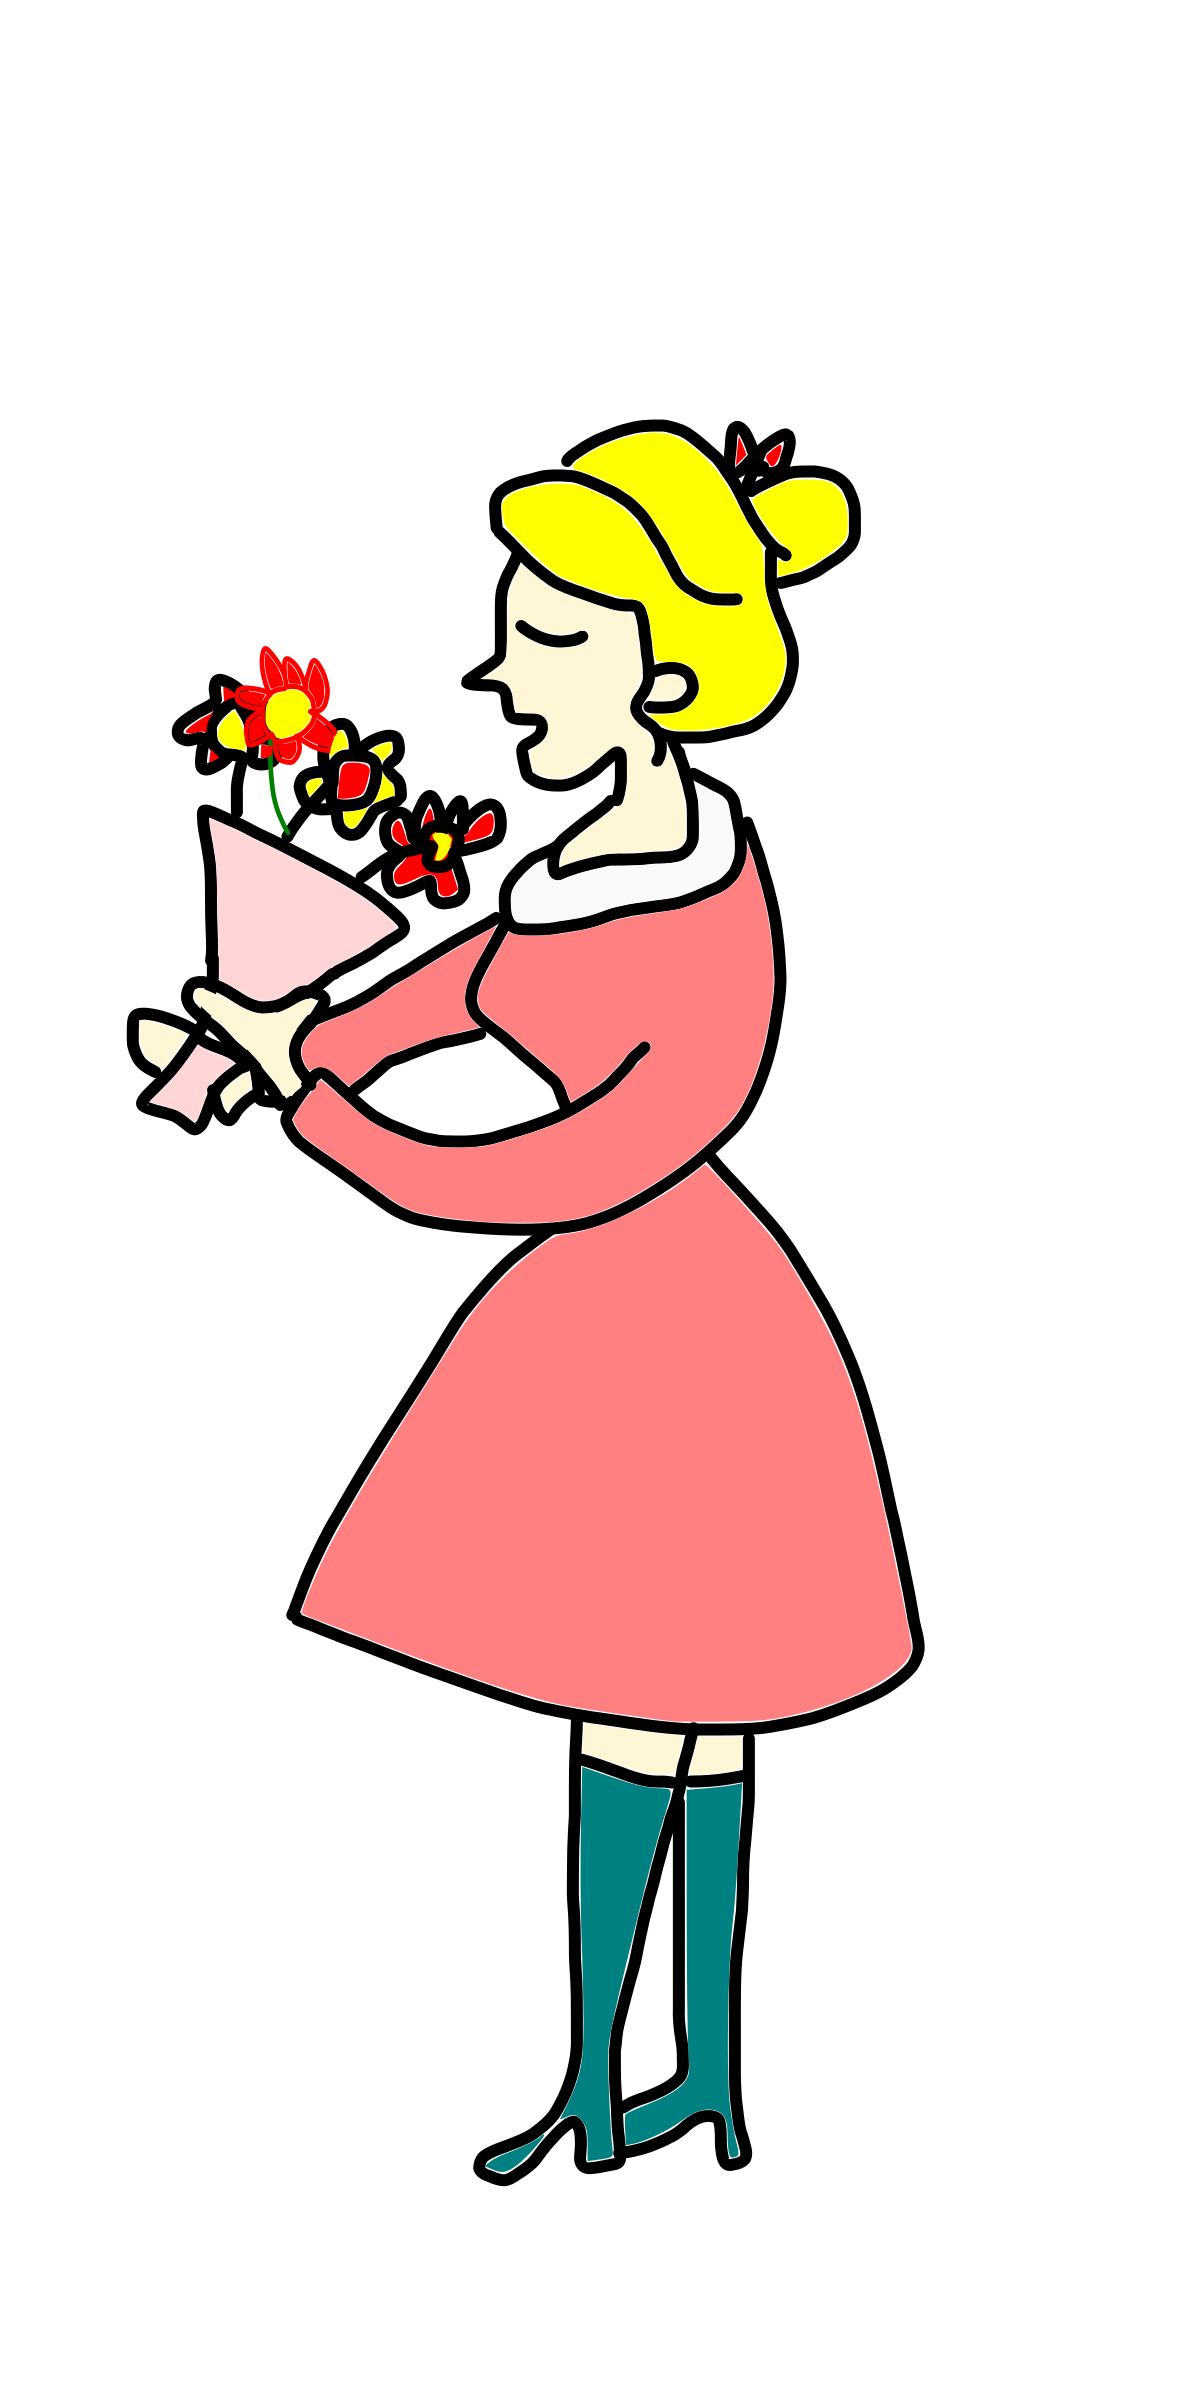 Flower girl free download. Lady clipart reporter